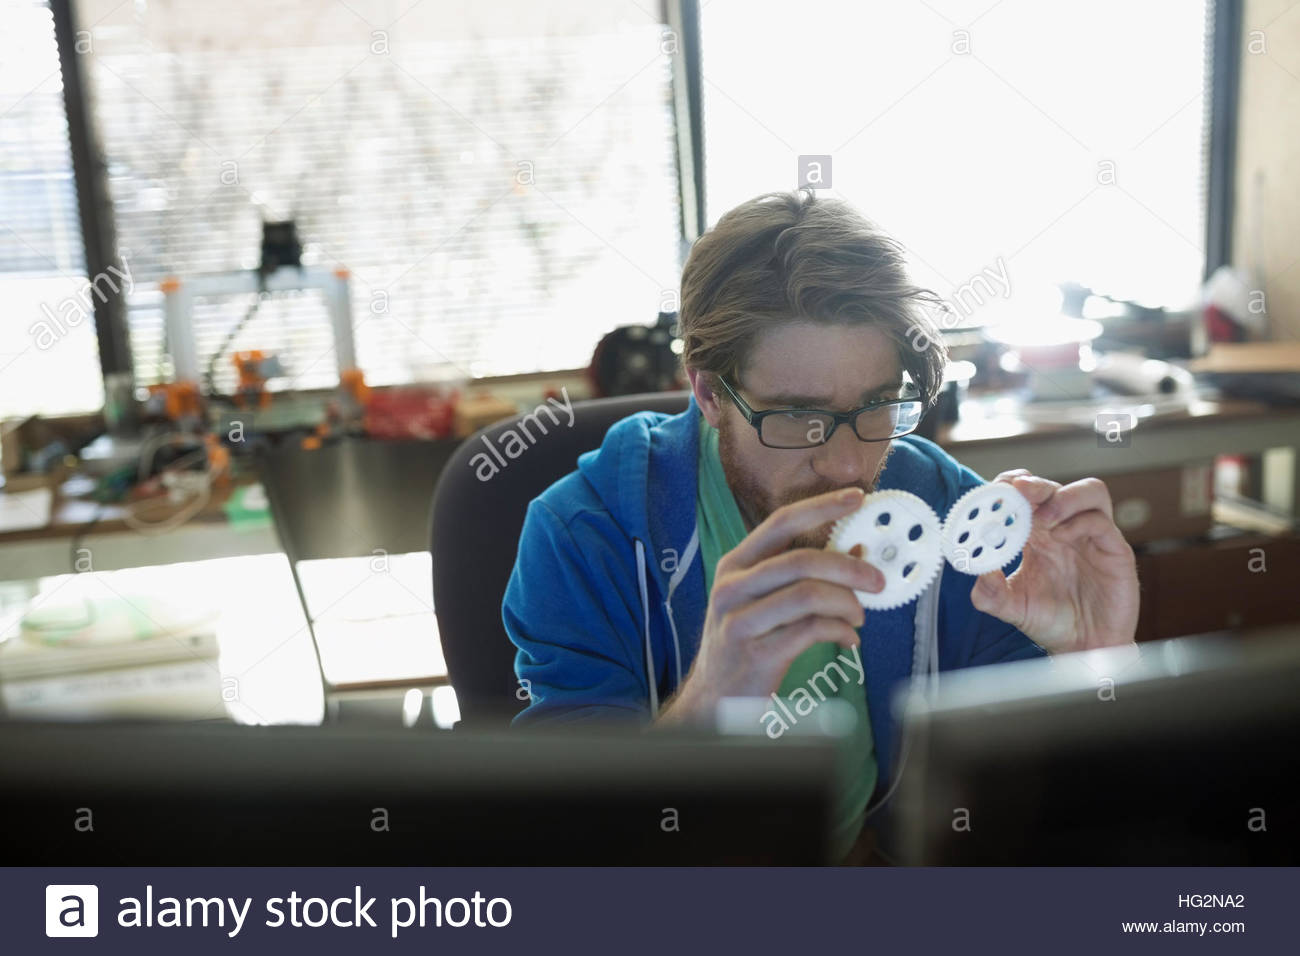 Male design professional engineer examining cogs in office - Stock Image